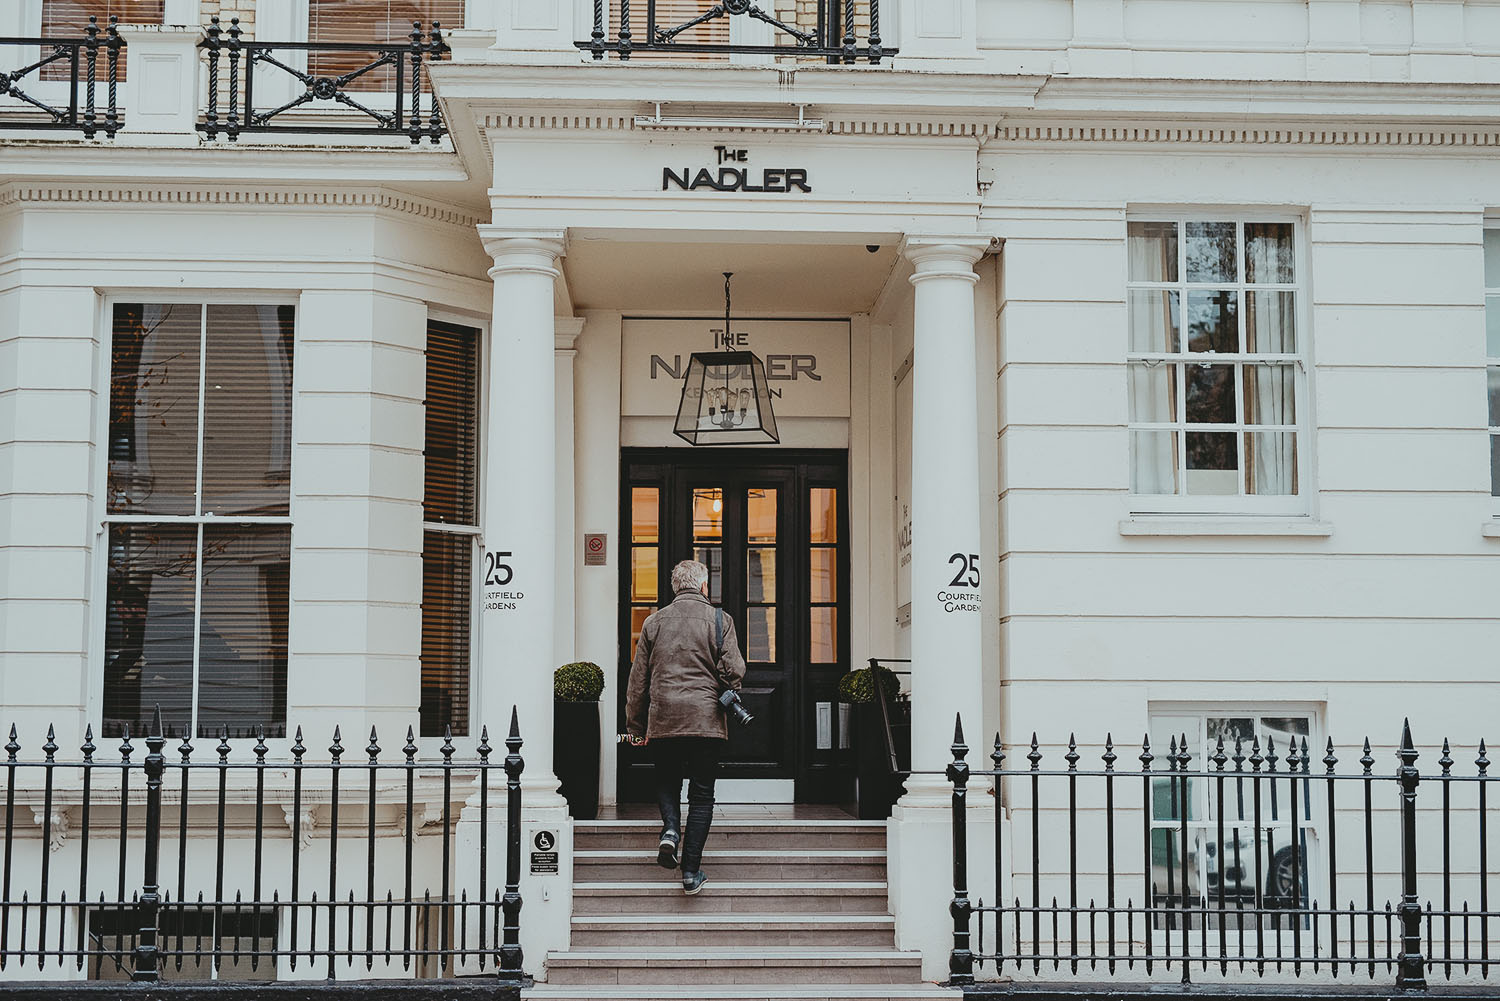 nadler hotel kensington london